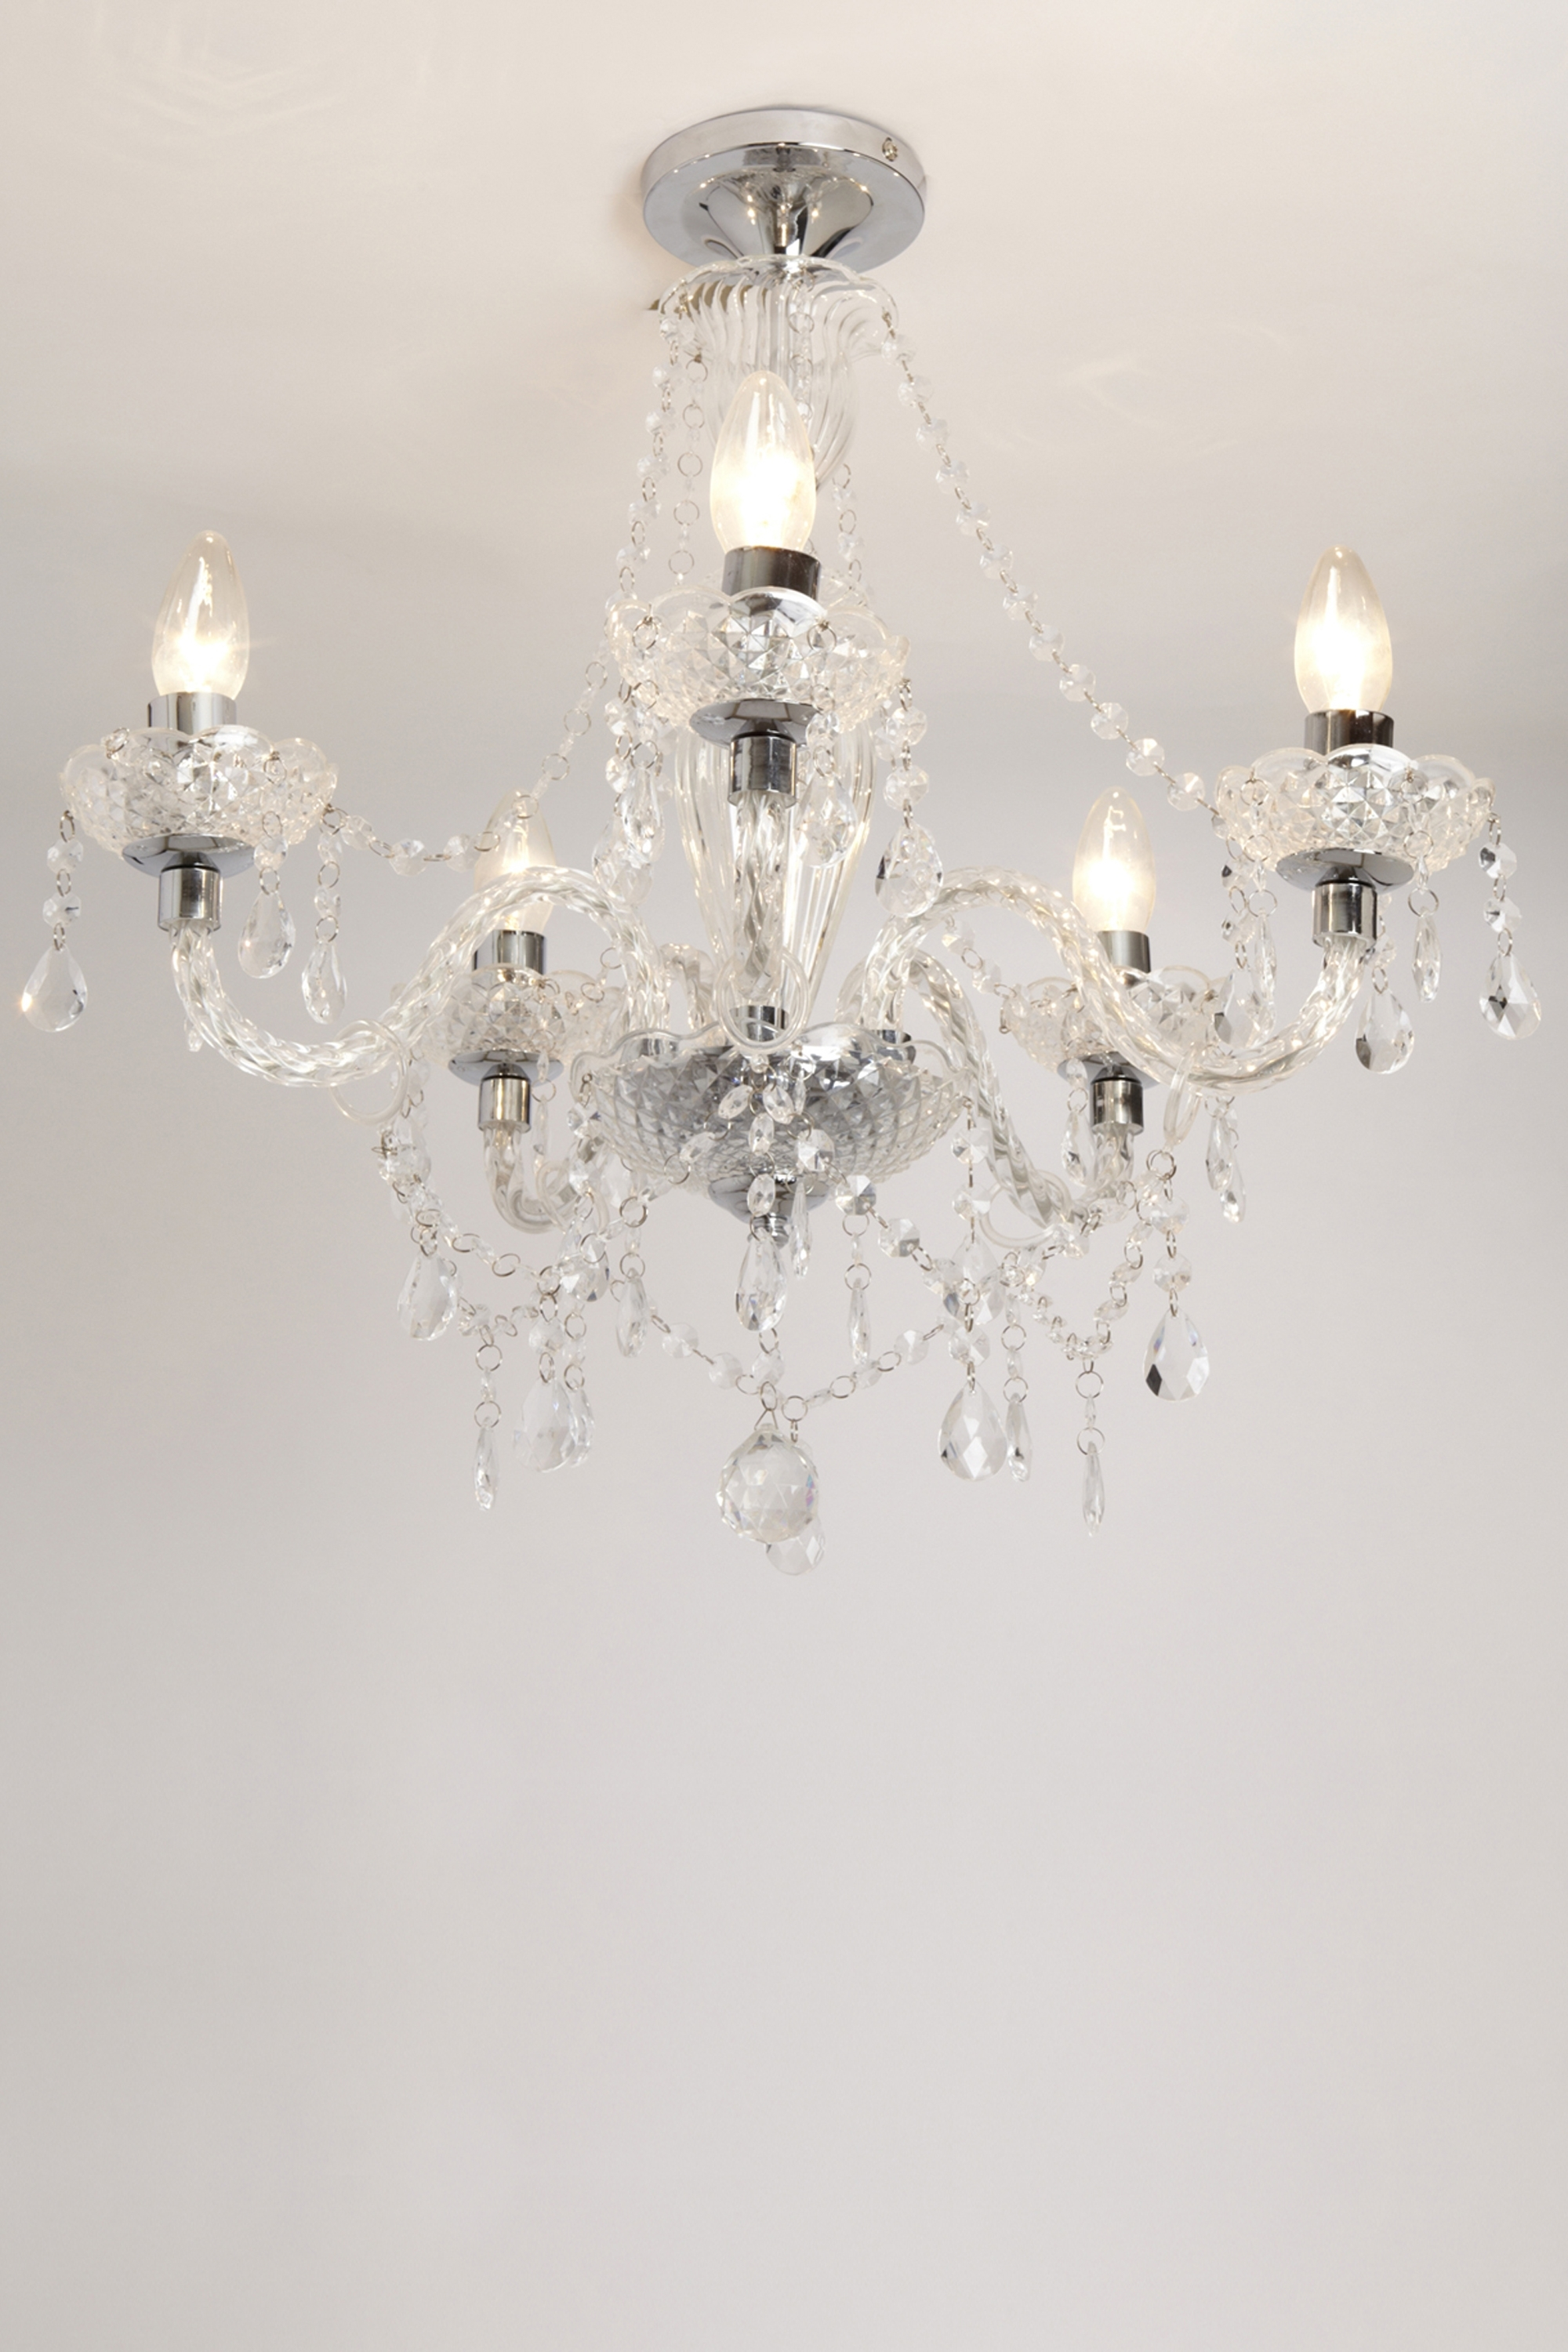 Sapparia 5 Light Flush Chandelier Bhs, £60 (Was £120), Living For Most Recent Flush Chandelier (View 17 of 20)